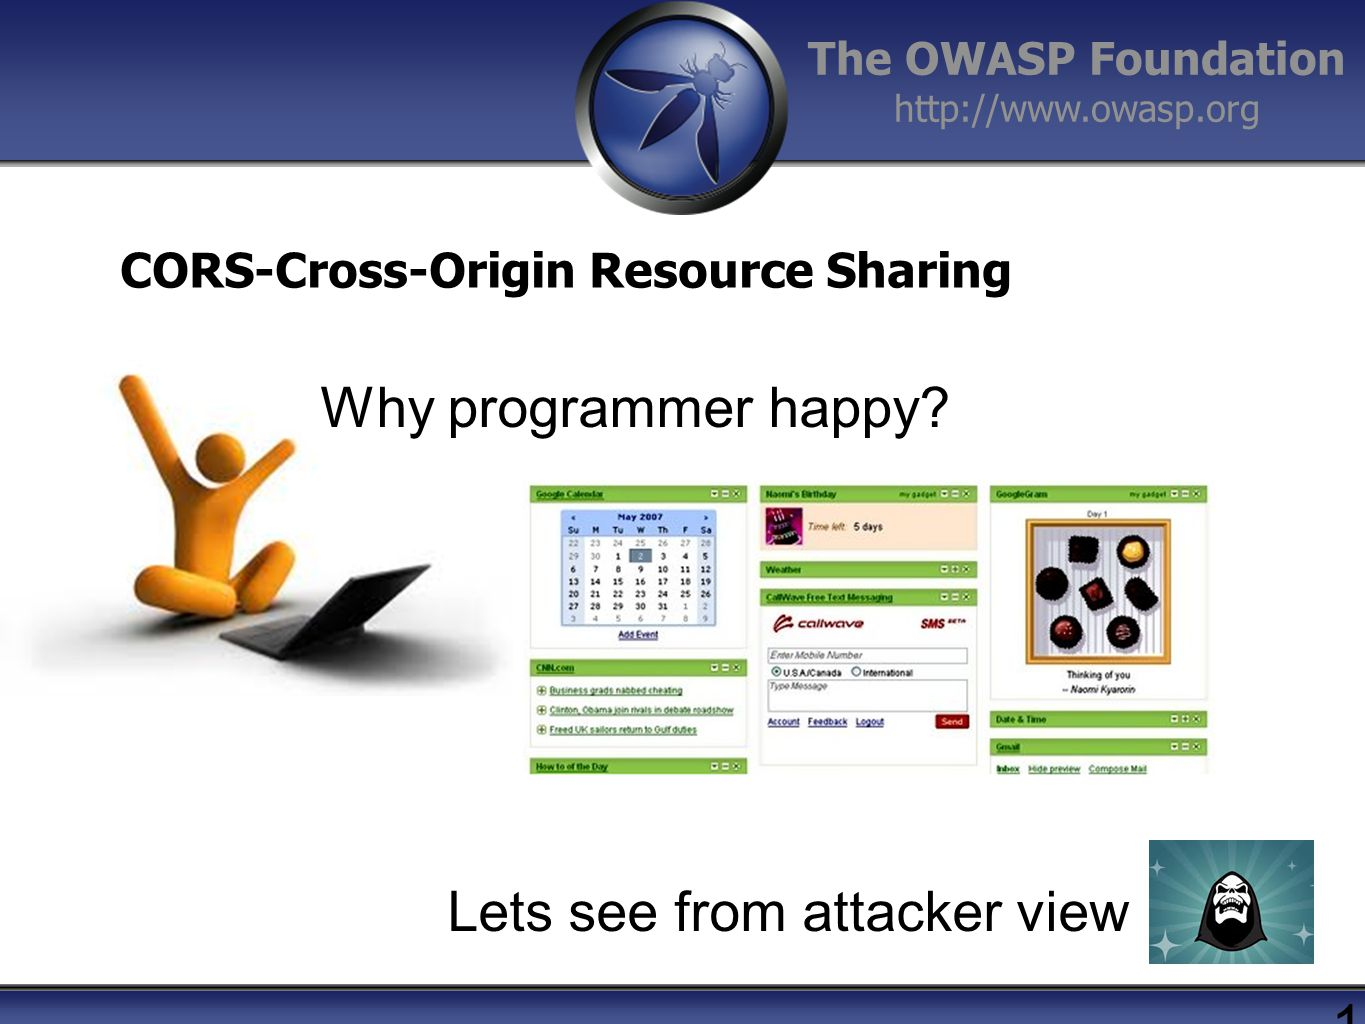 CORS-Cross-Origin Resource Sharing